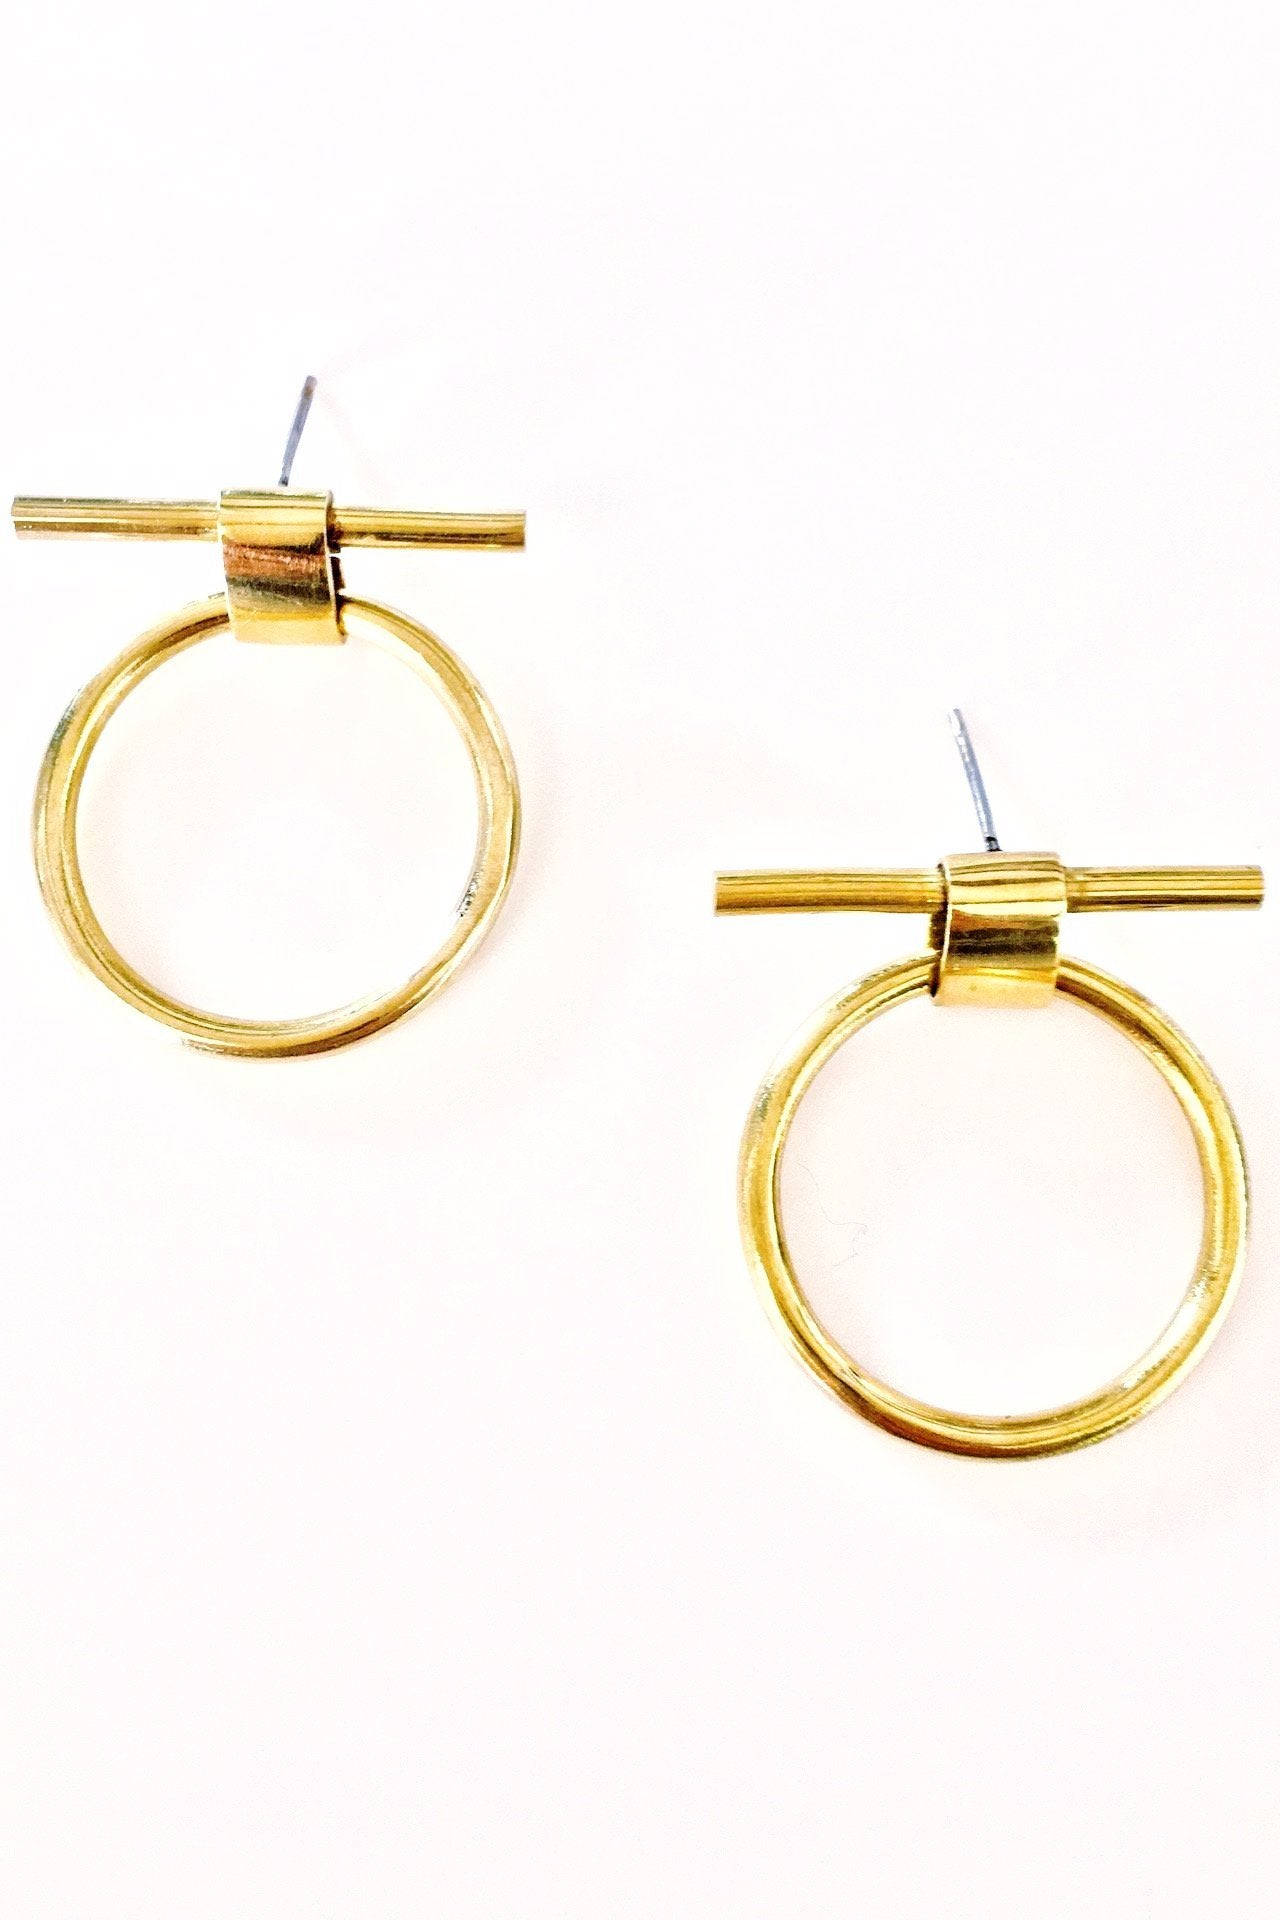 en circle open happiness boutique earrings gold stud